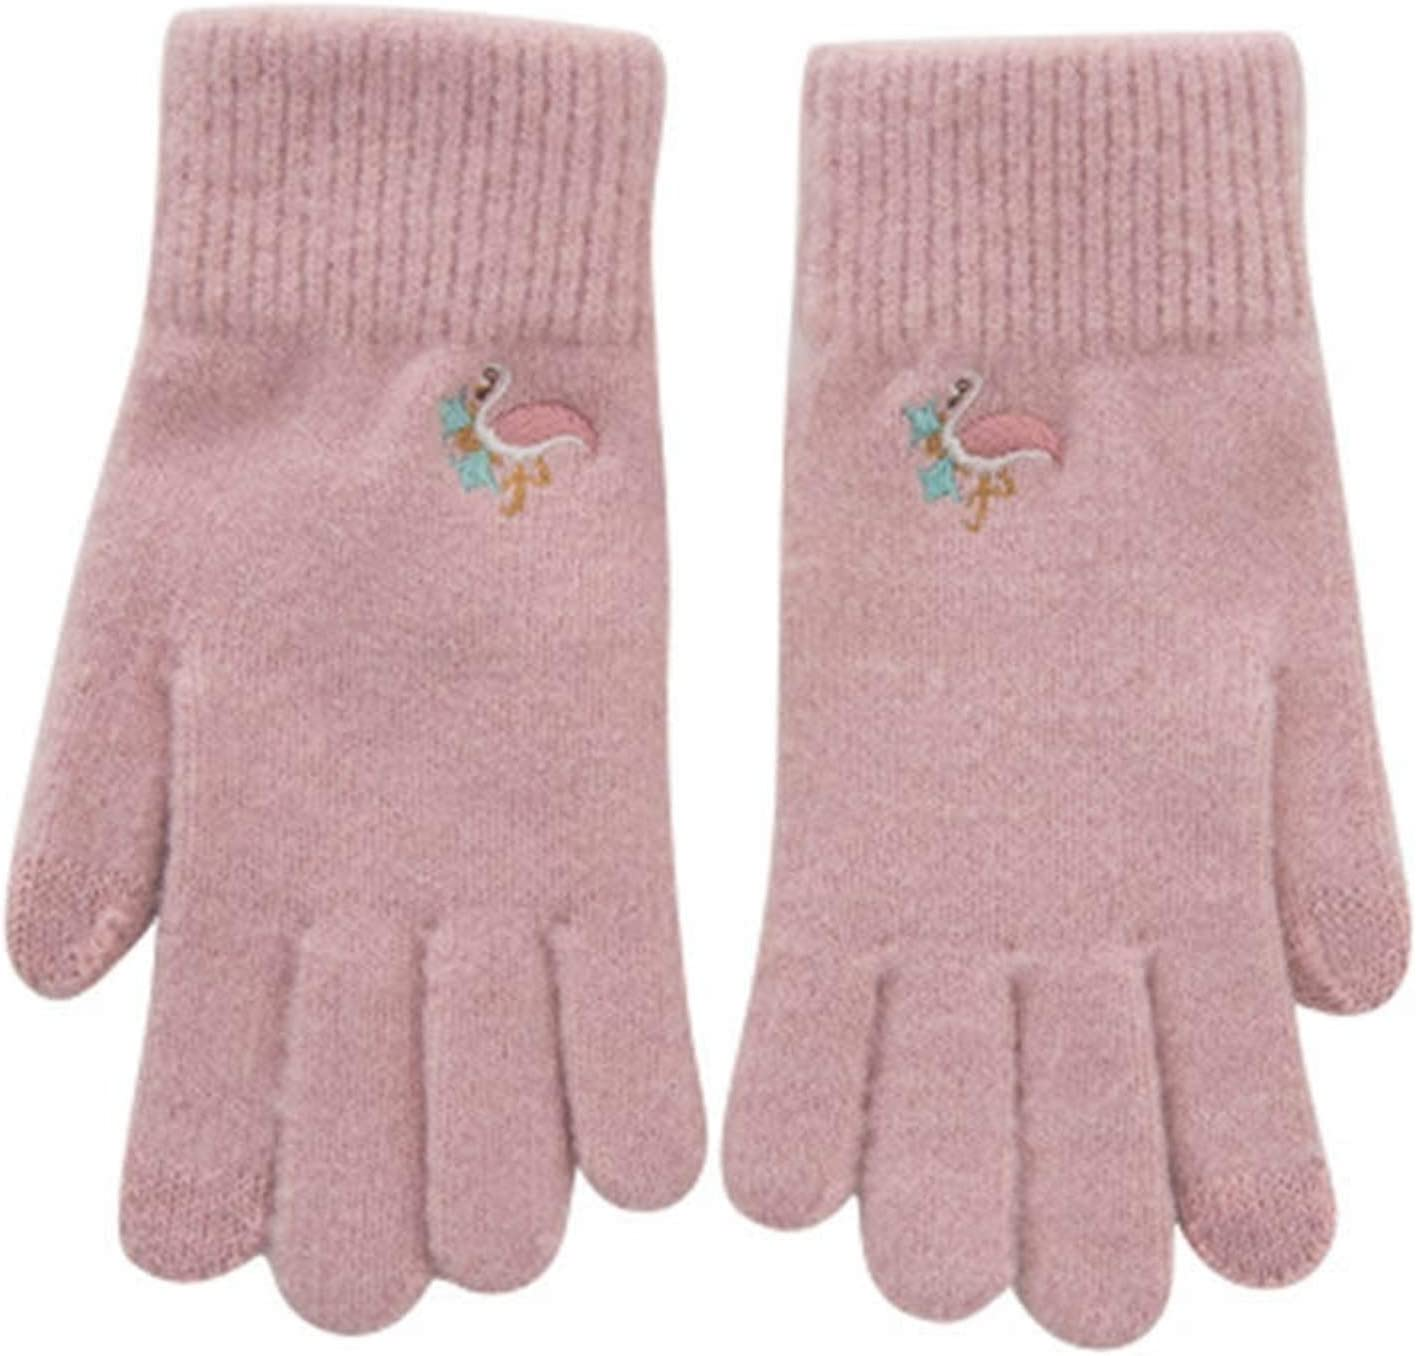 Women's Winter Knitted Embroidered Gloves Five Fingers Cute Pattern Warm Gloves (Color : A Pink)